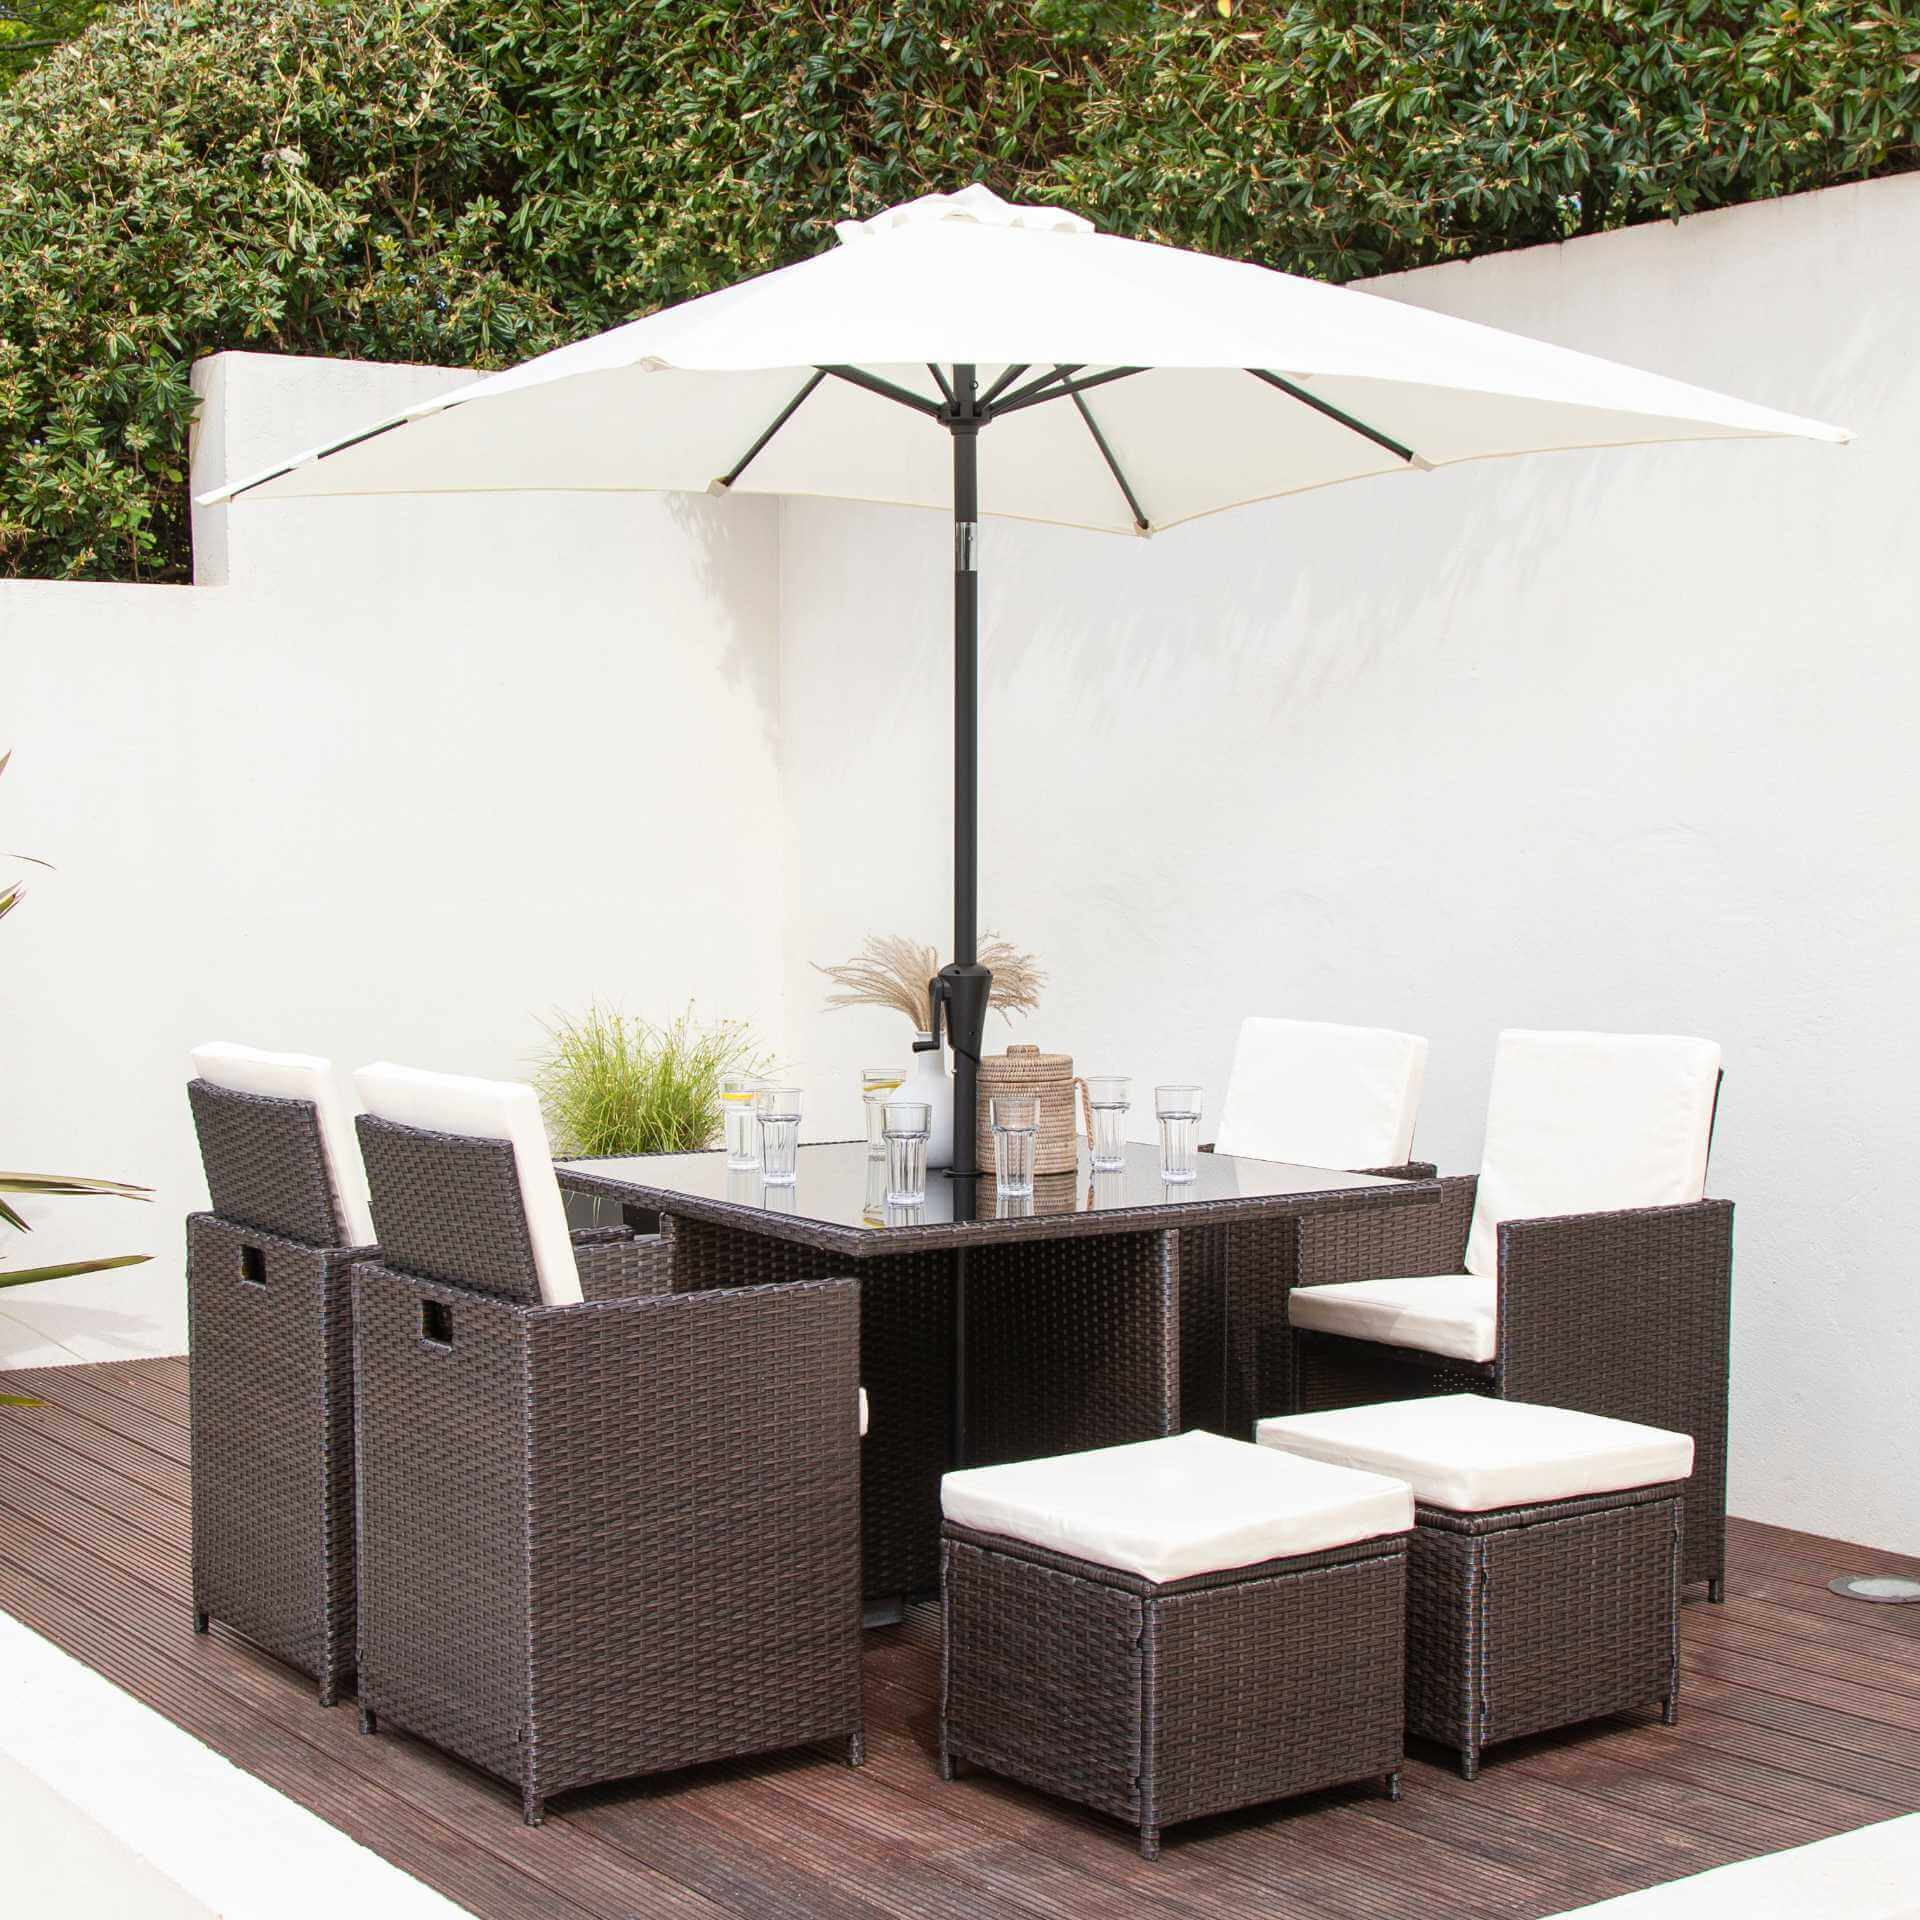 8 Seater Rattan Cube Outdoor Dining Set with Parasol - Mixed Brown Weave